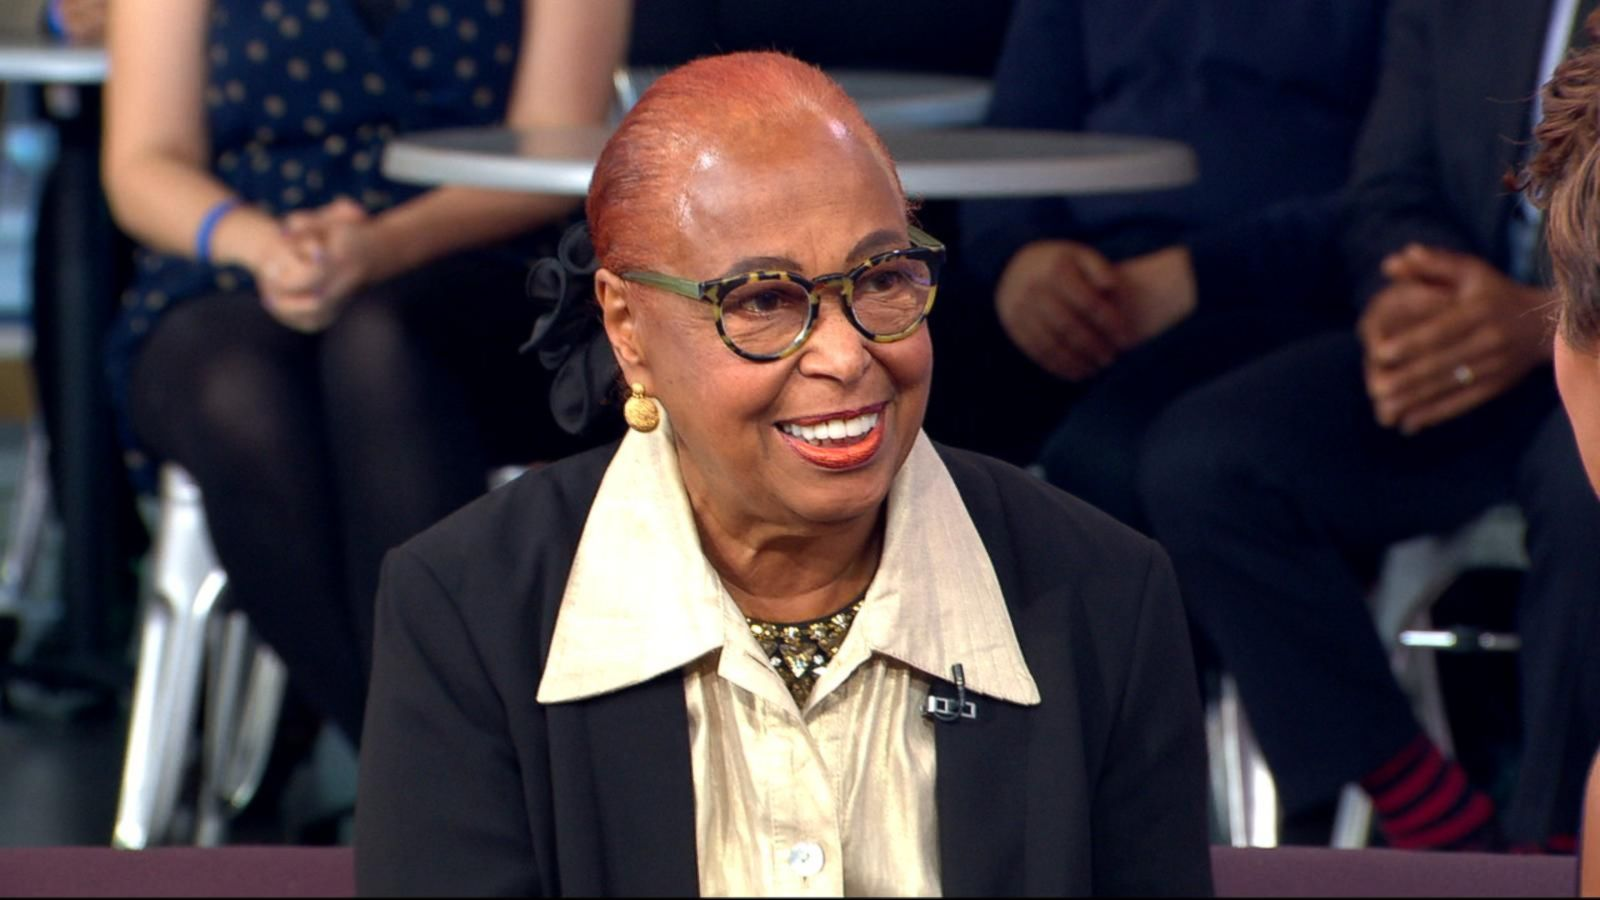 Ground breaking African American female doctor says she had to 'shake off haters' on her way to success